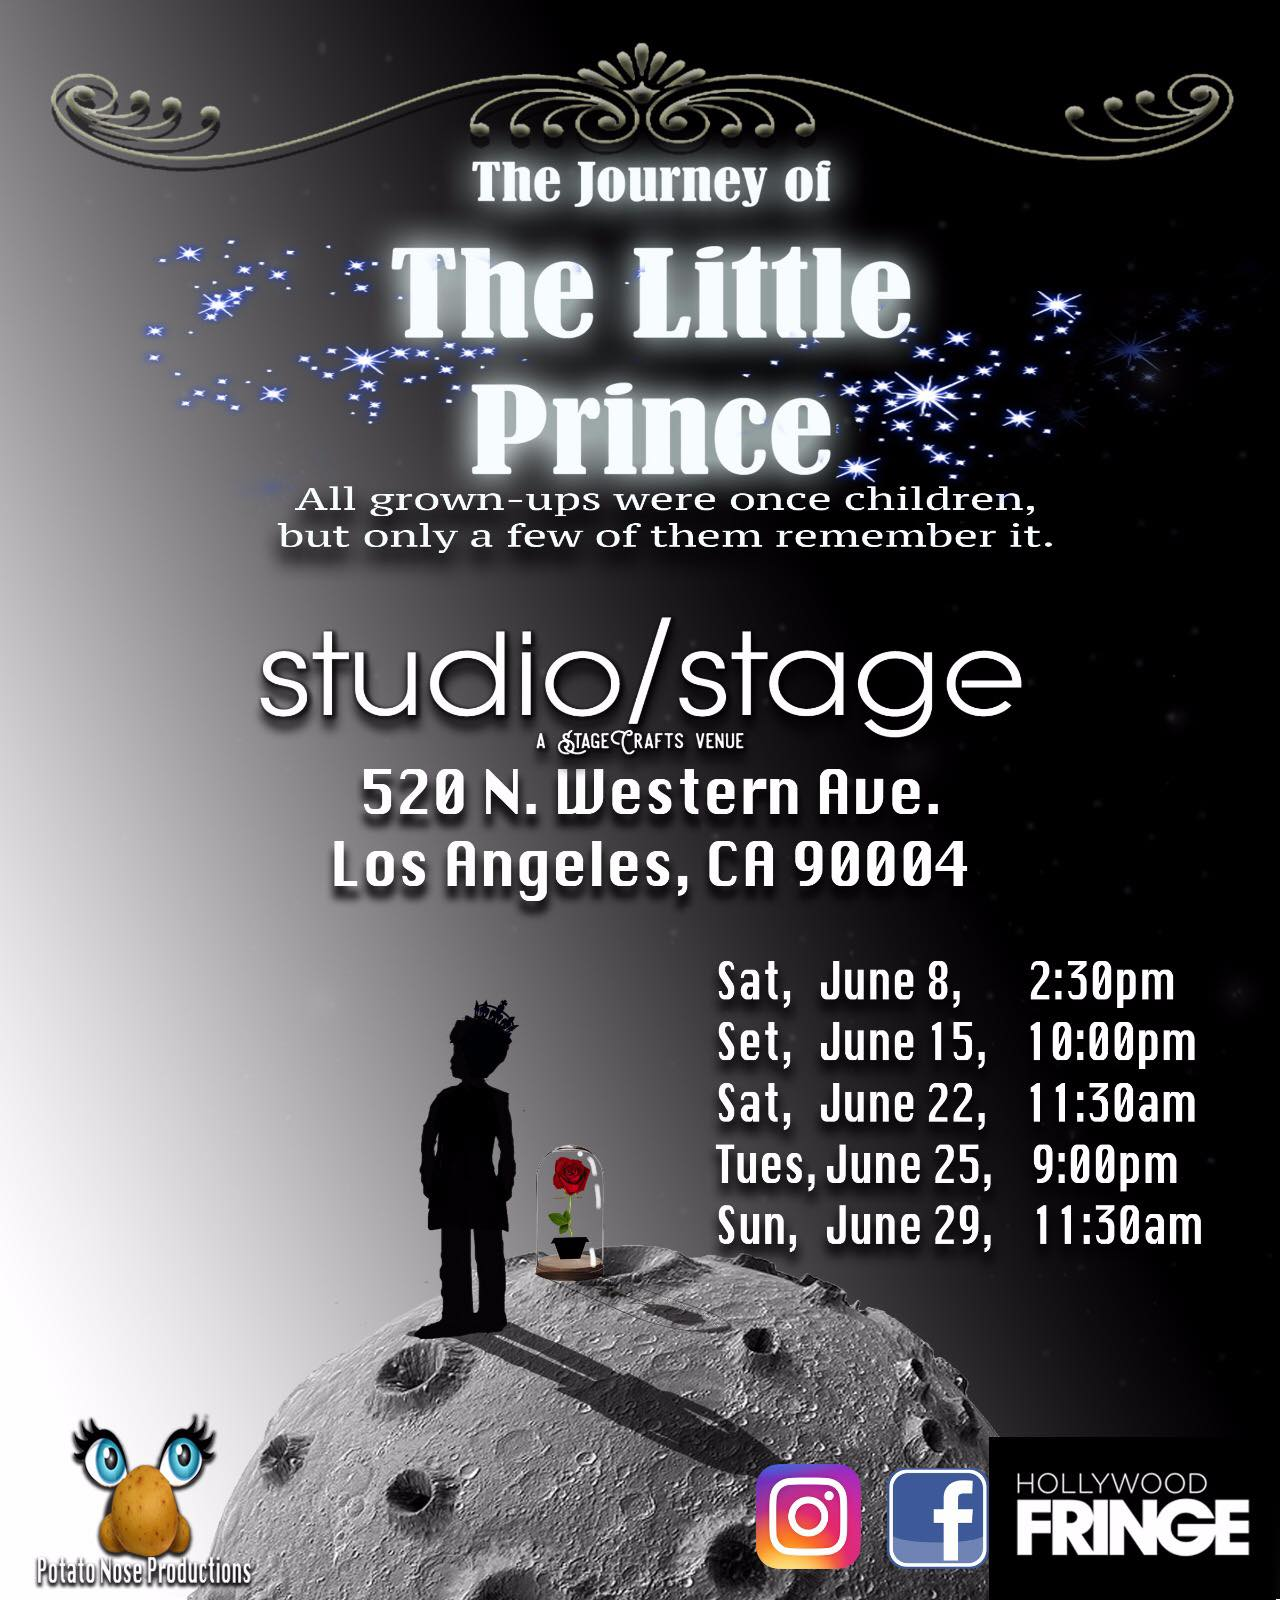 https://www.facebook.com/The-Journey-of-The-Little-Prince-293888181296929/    www.instagram.com/thejourneyofthelittleprince